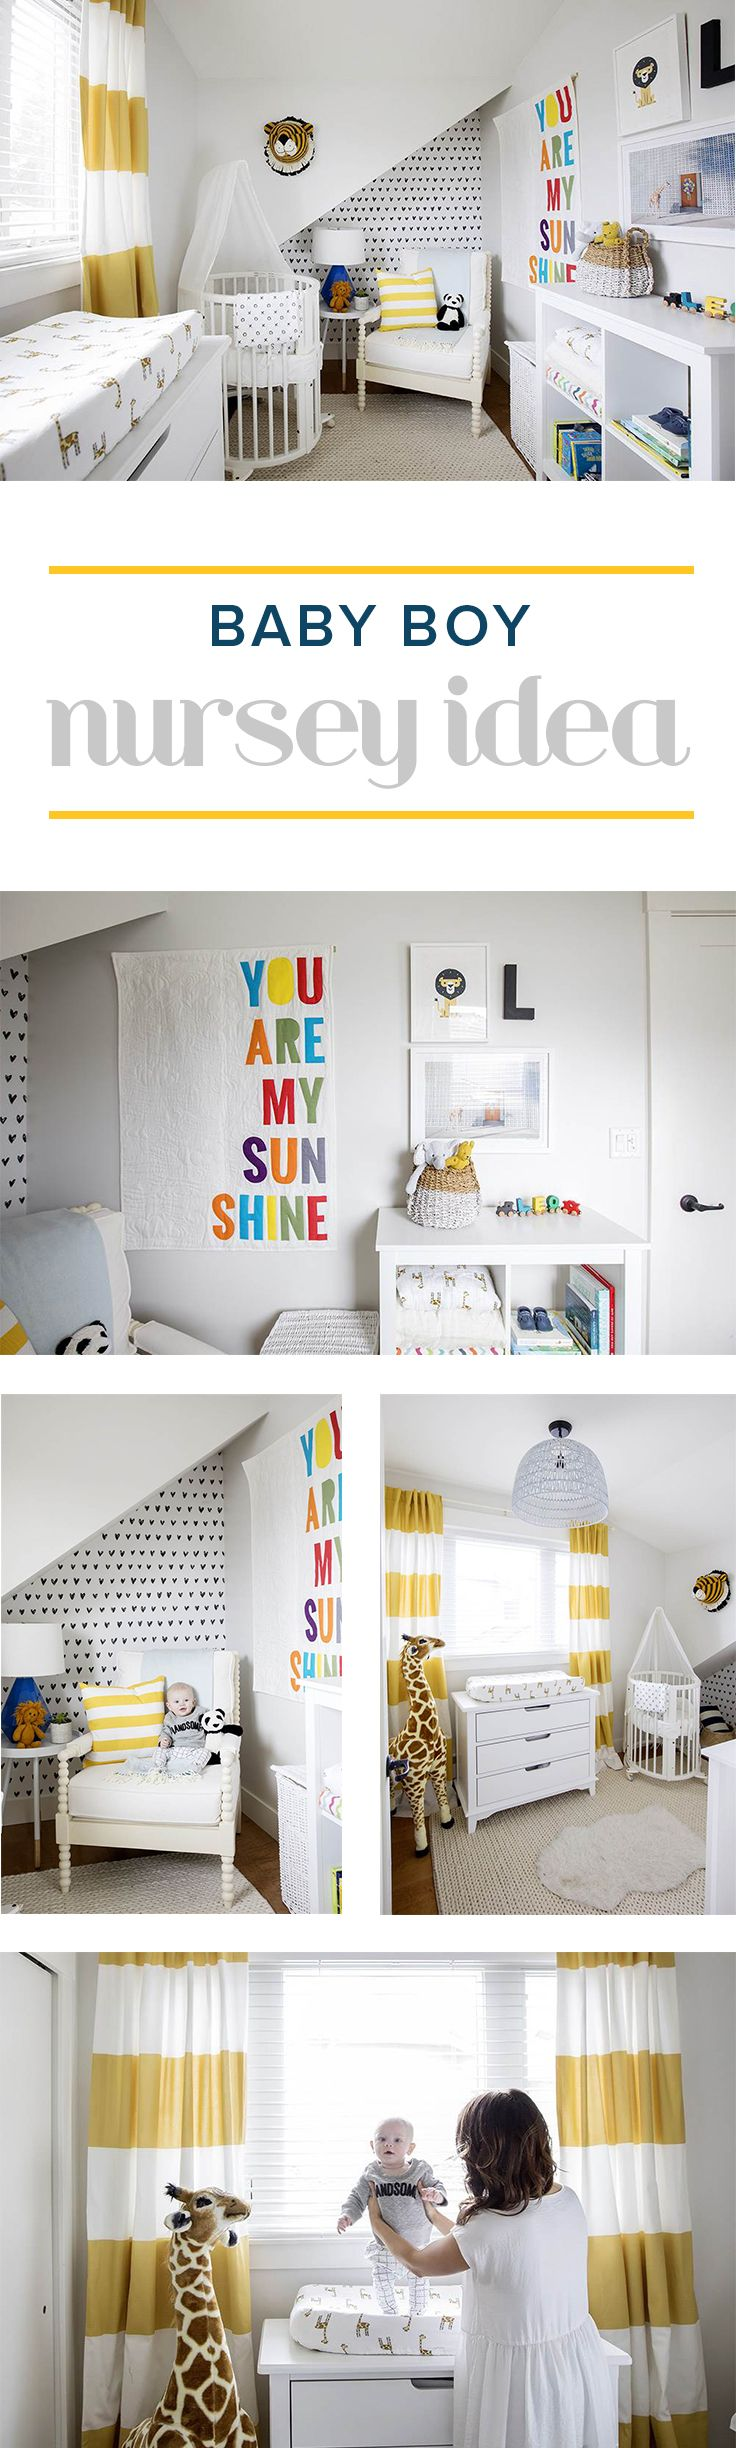 1011 best CLASSIC NURSERY images on Pinterest | Projects, Baby ...